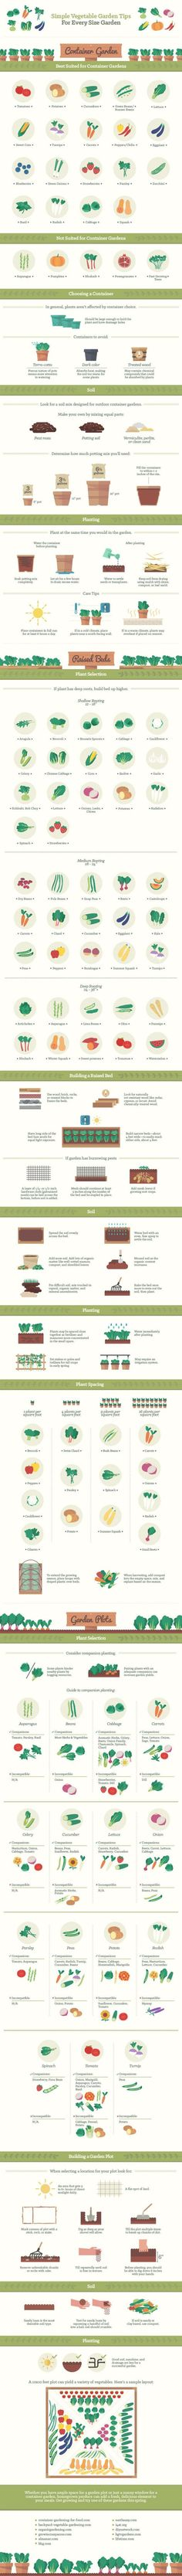 An Extensive Guide to Growing Vegetables | Mental Floss UK